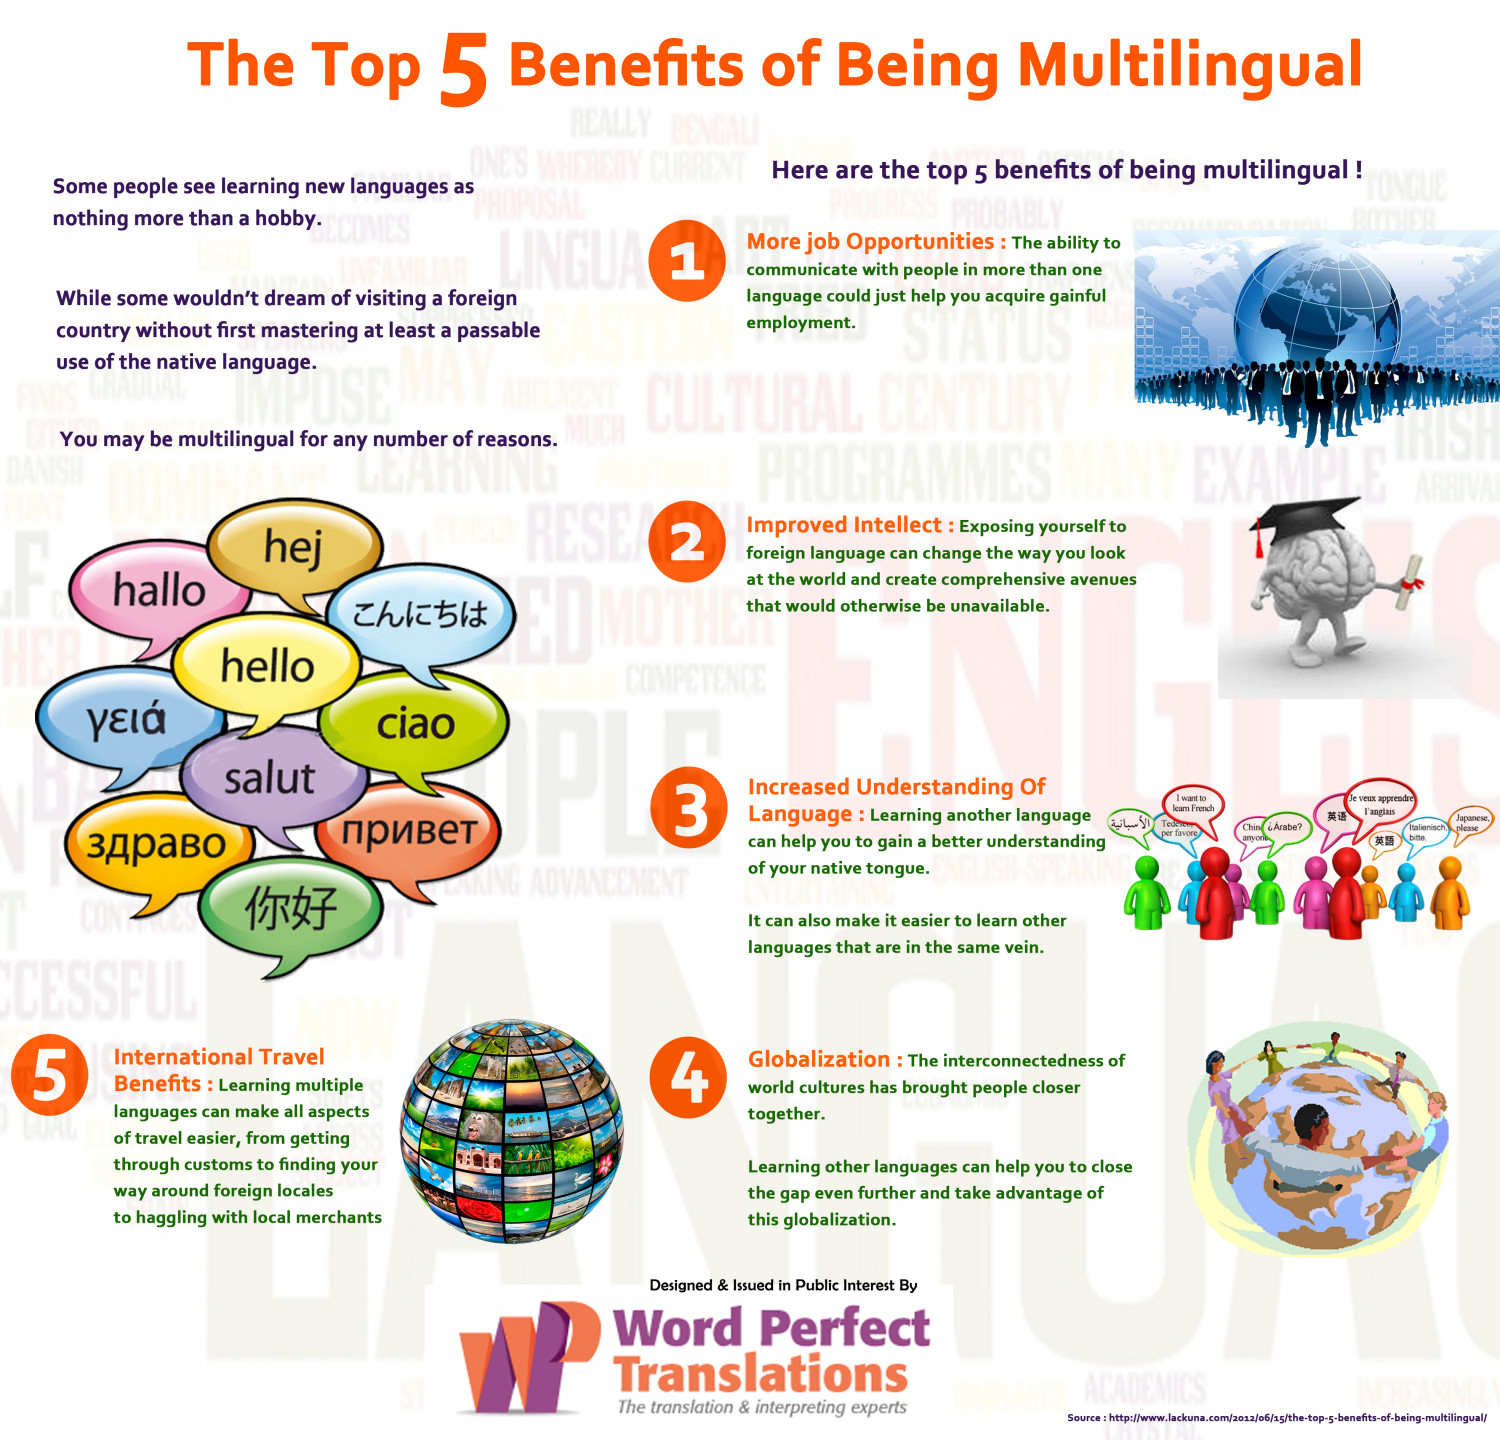 The Top 5 Benefits of Being Multilingual Infographic